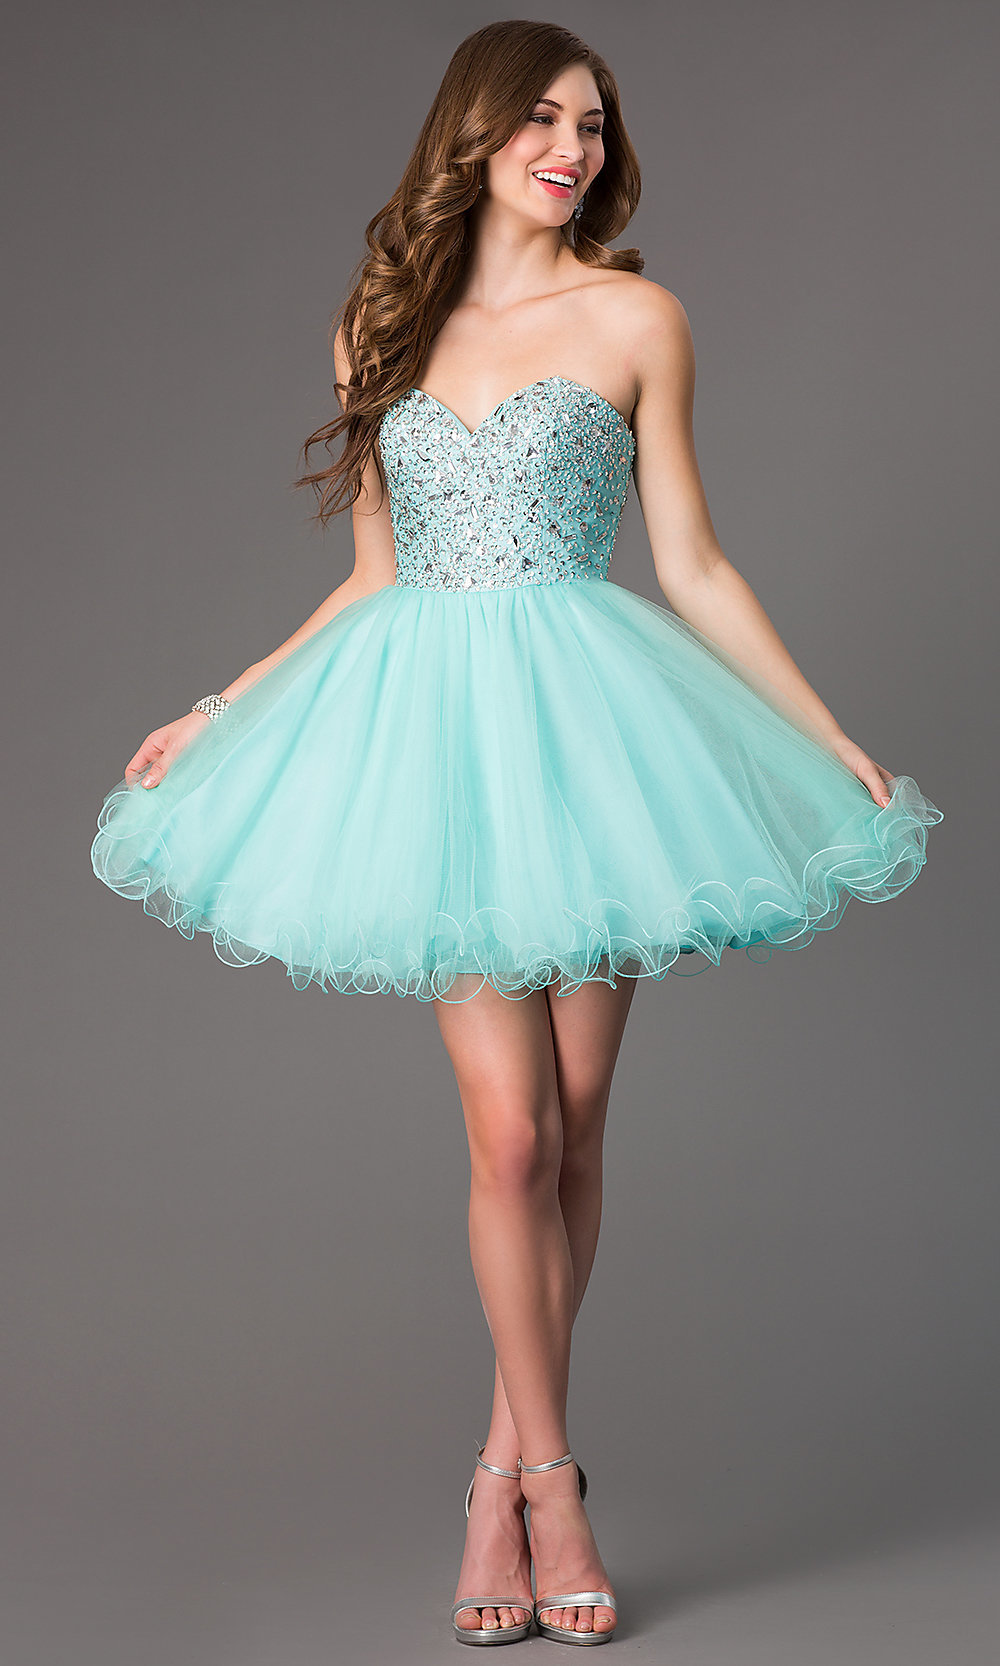 Jewel Embellished Bodice Sweetheart Dress Promgirl